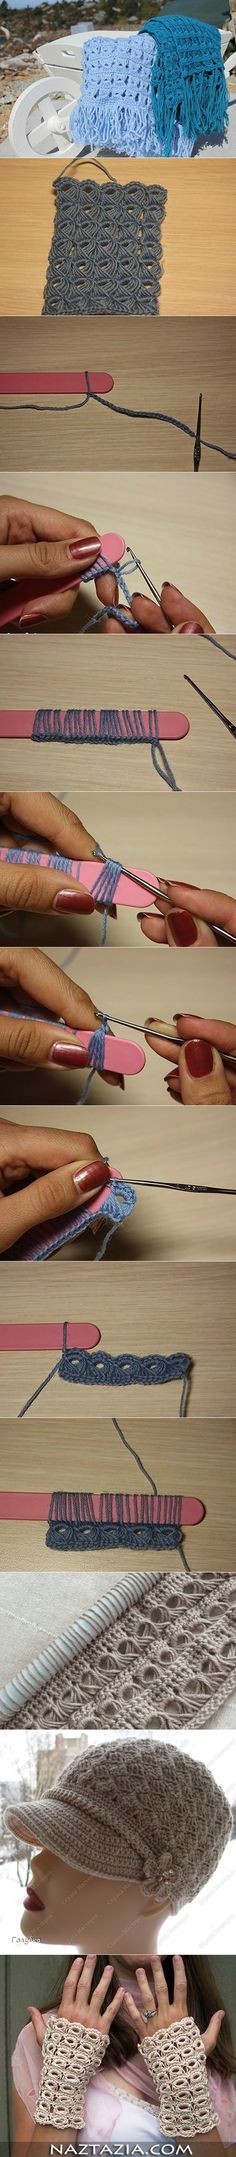 DIY Basic Crochet Pattern with Popsicle Stick - http://manmadediy.me/diy-basic-crochet-pattern-with-popsicle-stick/